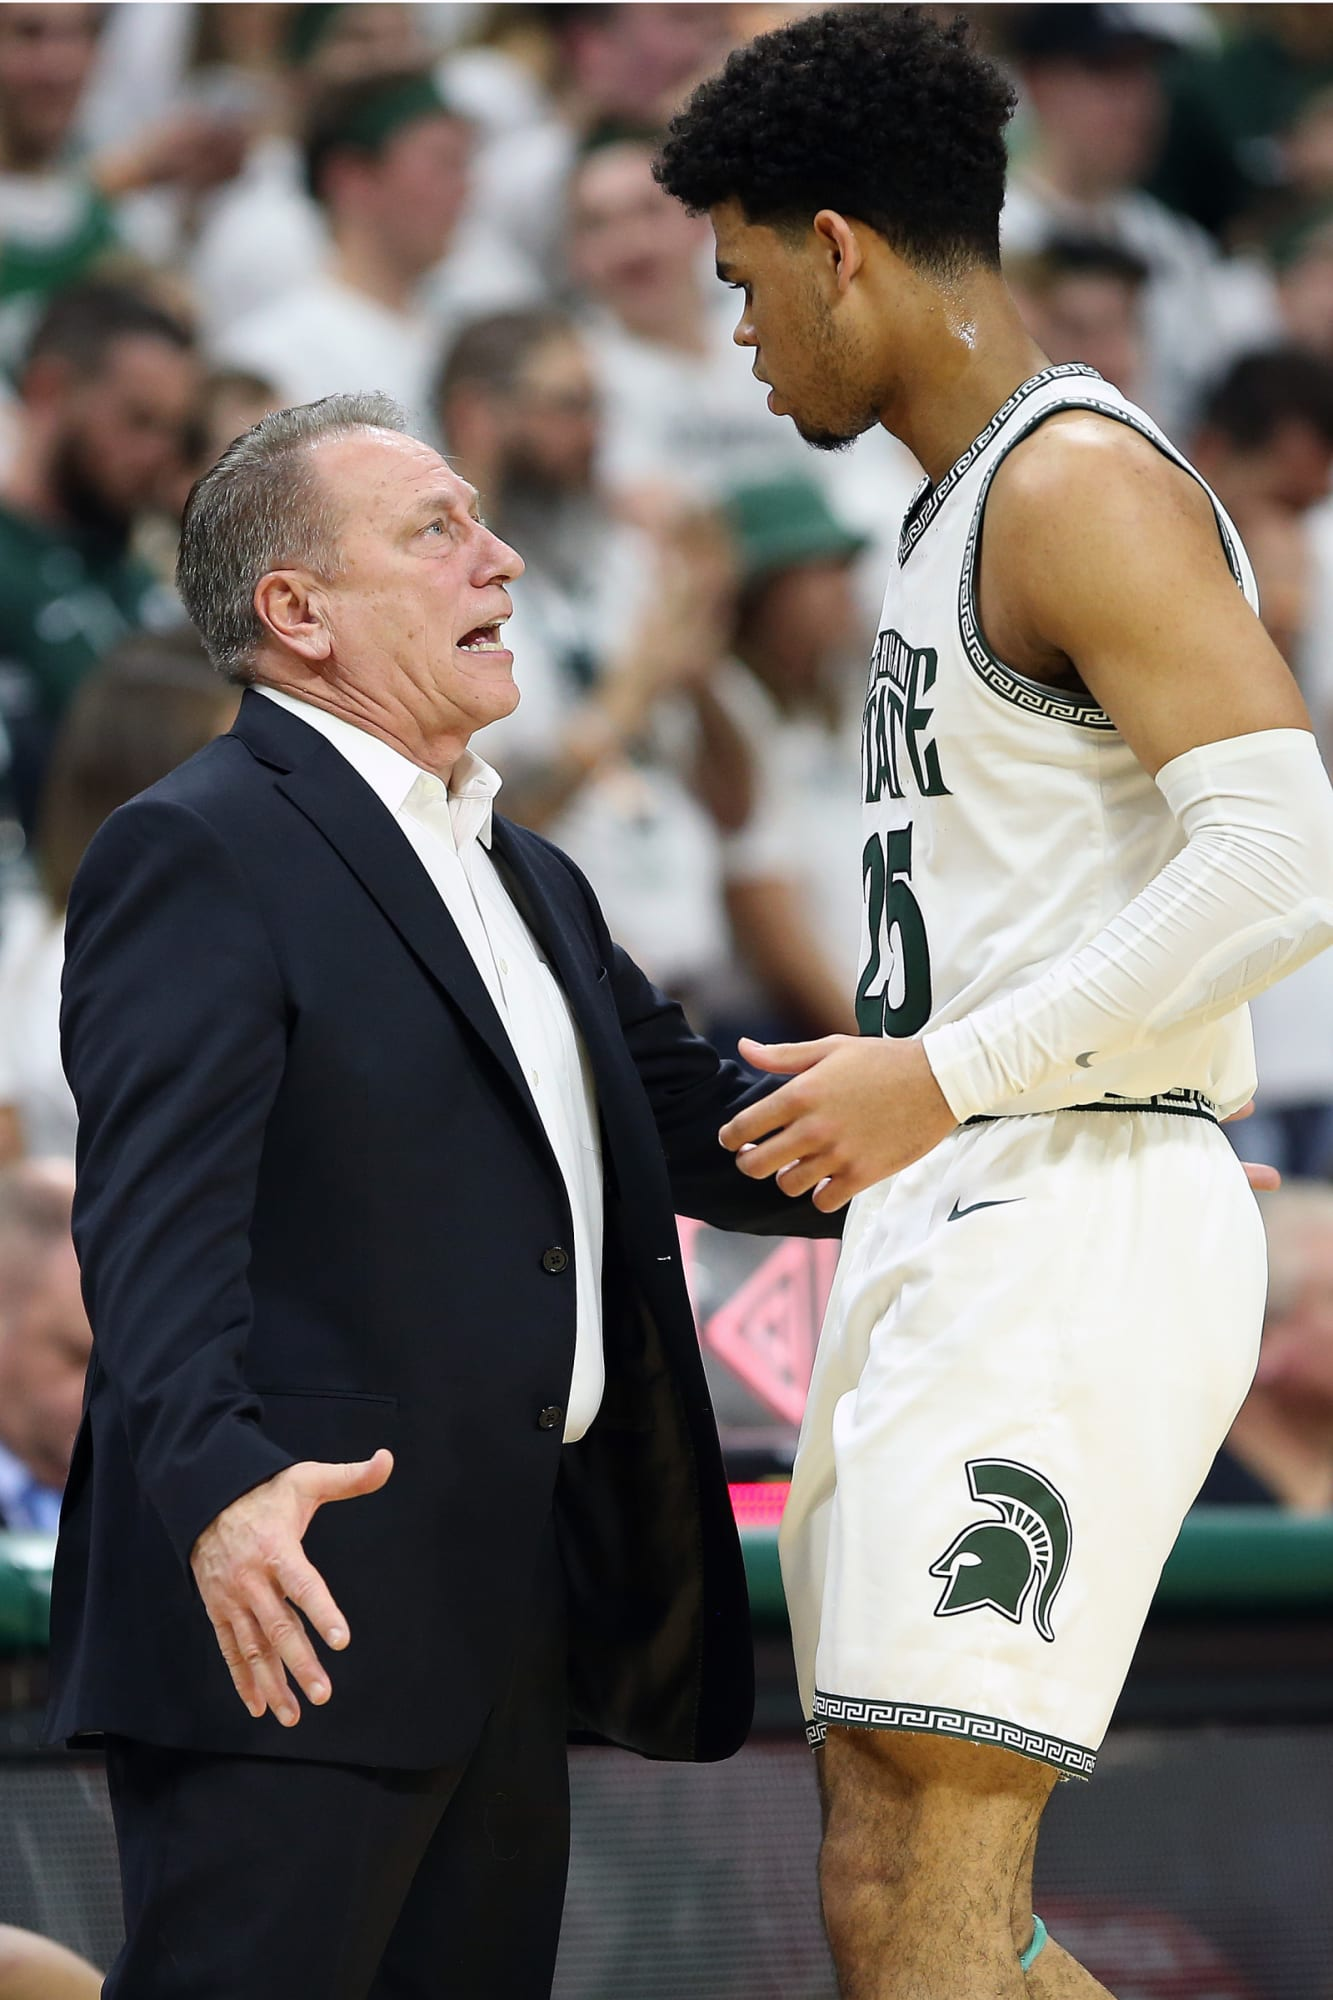 Michigan State Basketball: Takeaways from close win over Detroit Mercy